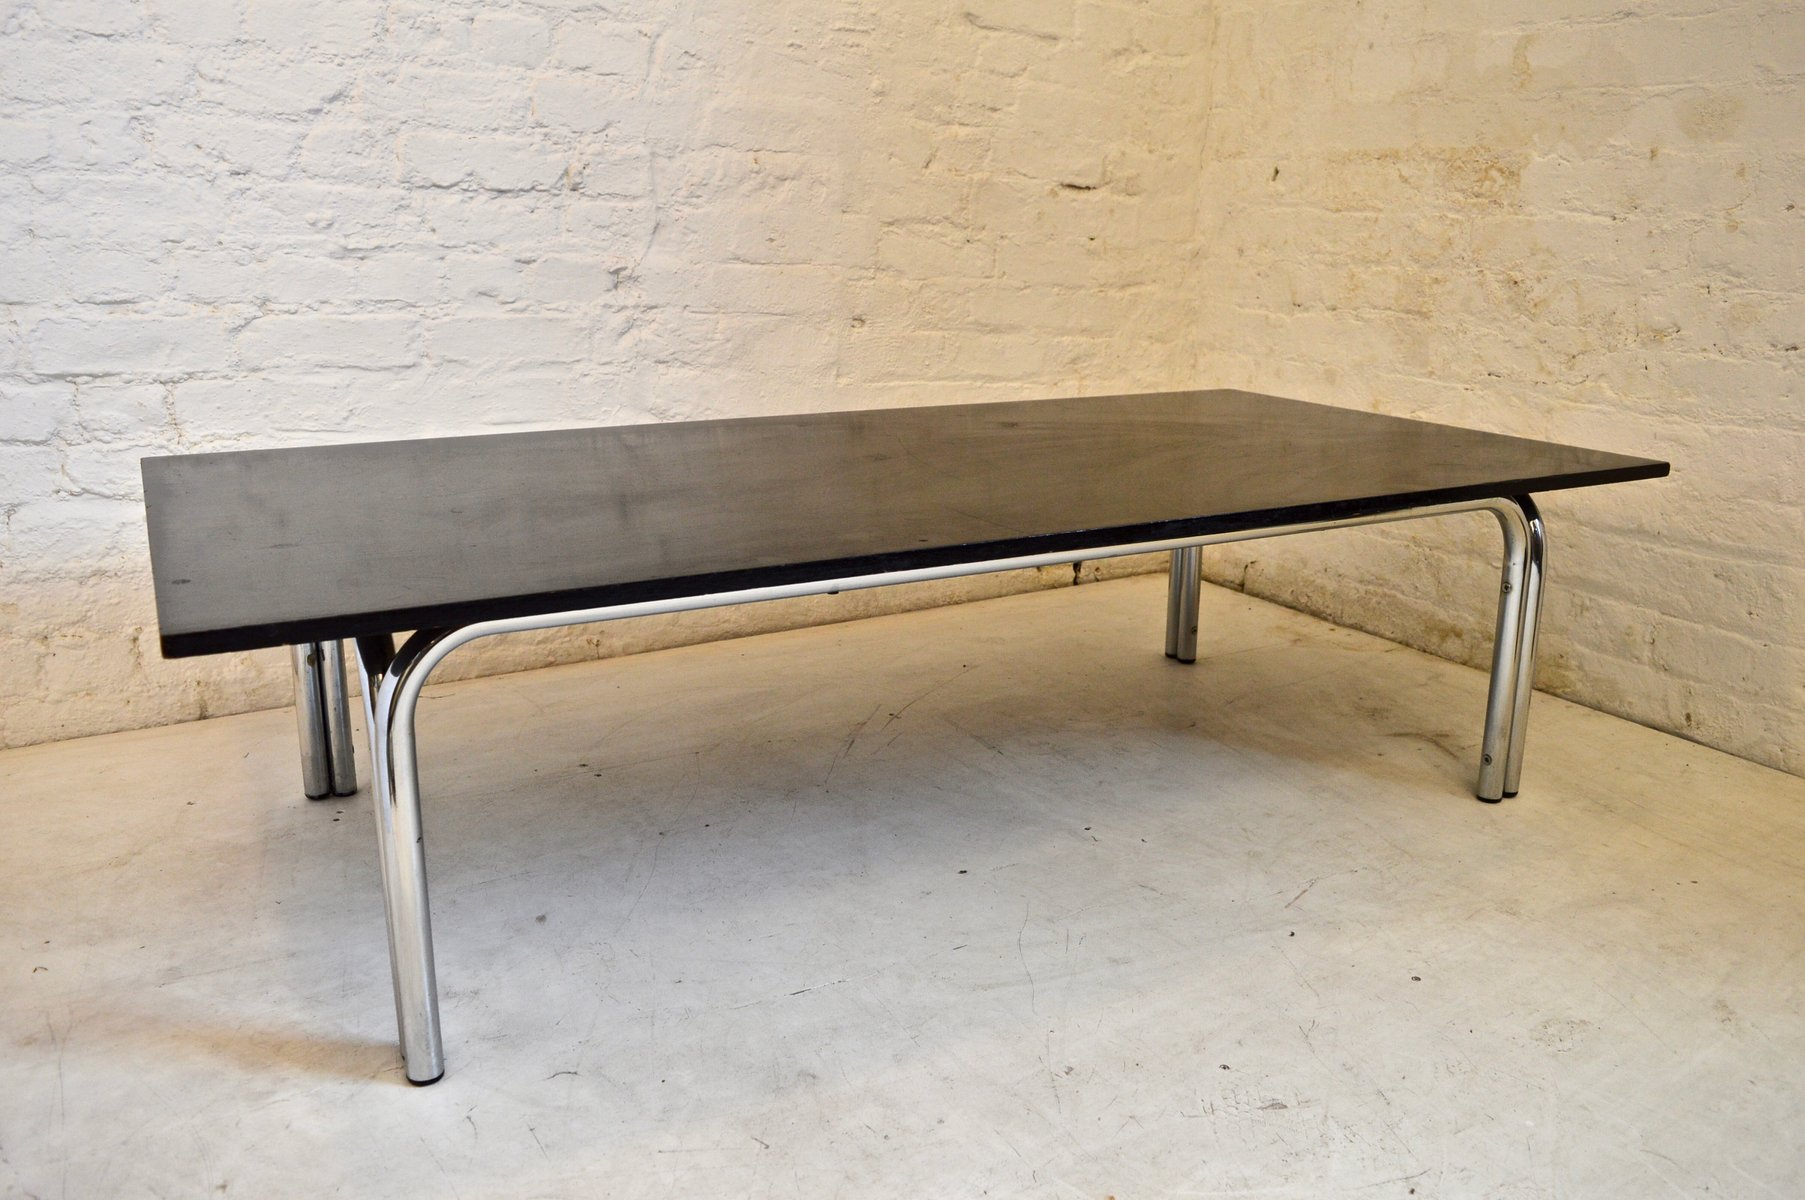 mid century modern coffee table by tim bates for pieff 1970s for sale at pamono. Black Bedroom Furniture Sets. Home Design Ideas